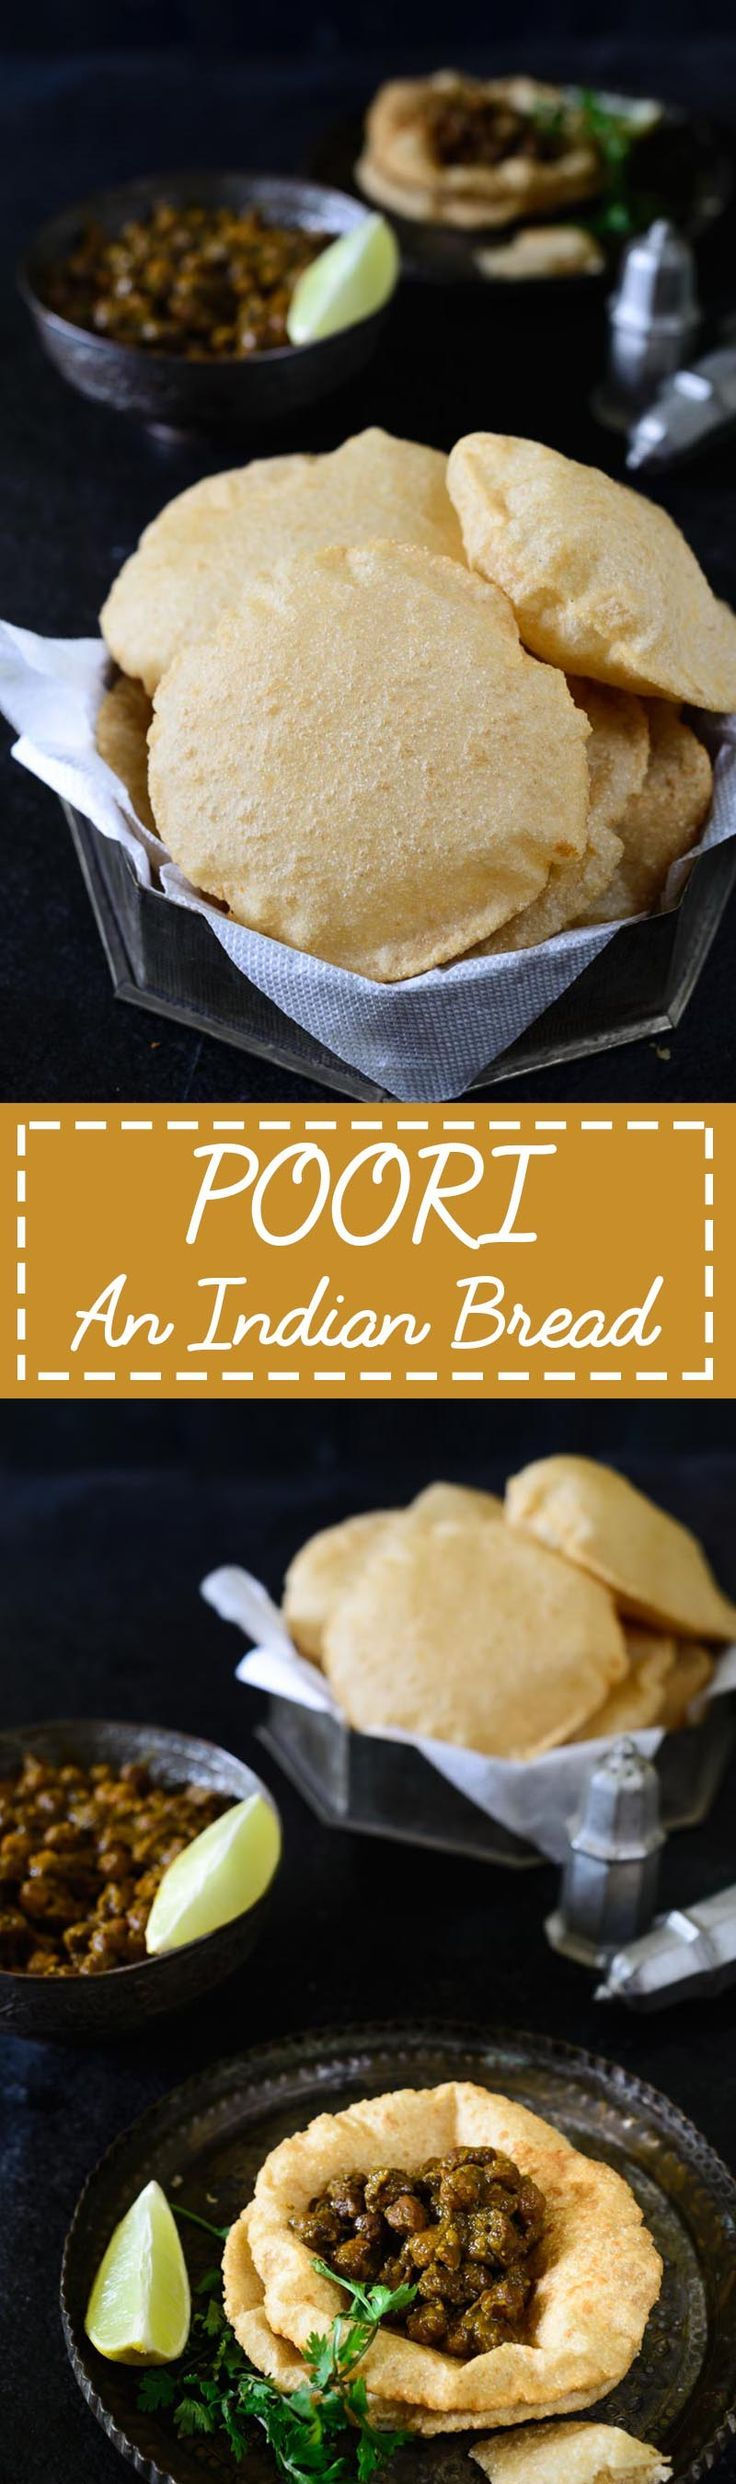 Tips and tricks on how to make perfect poori, a deep-fried puffed Indian bread, every time you make it with step by step instructions. Indian I Bread I Recipe I Puffed I Vegan I Easy I Simple I Traditional I Authentic I Food I Homemade